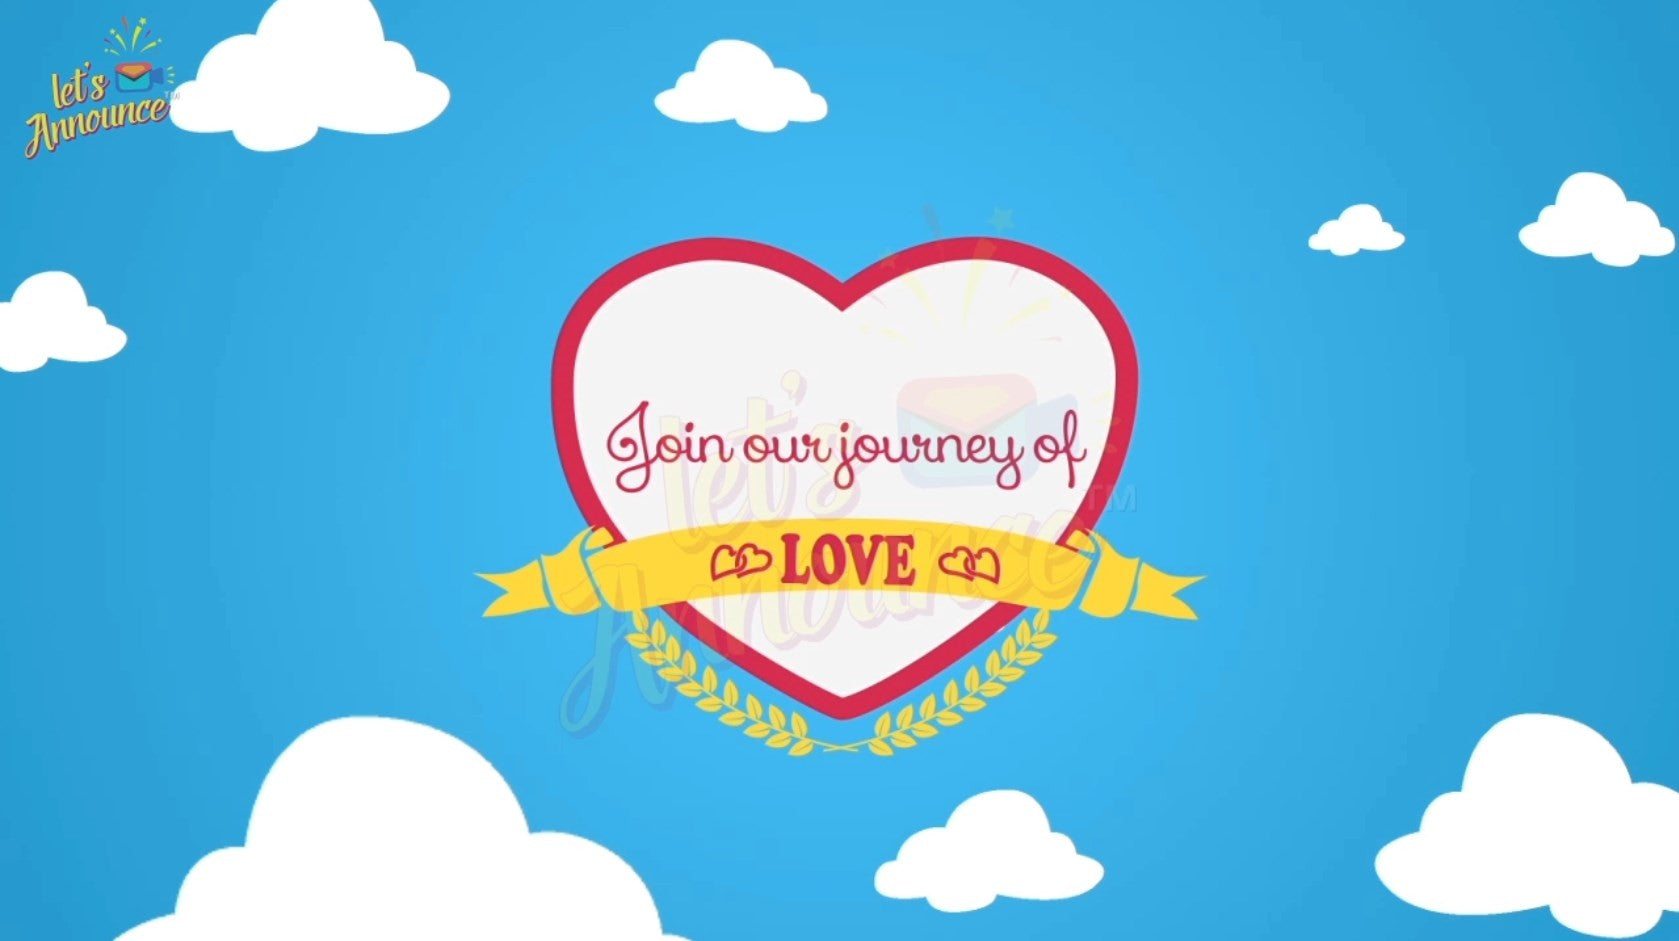 Journey of Love Invite-20 sec (USD 30$)